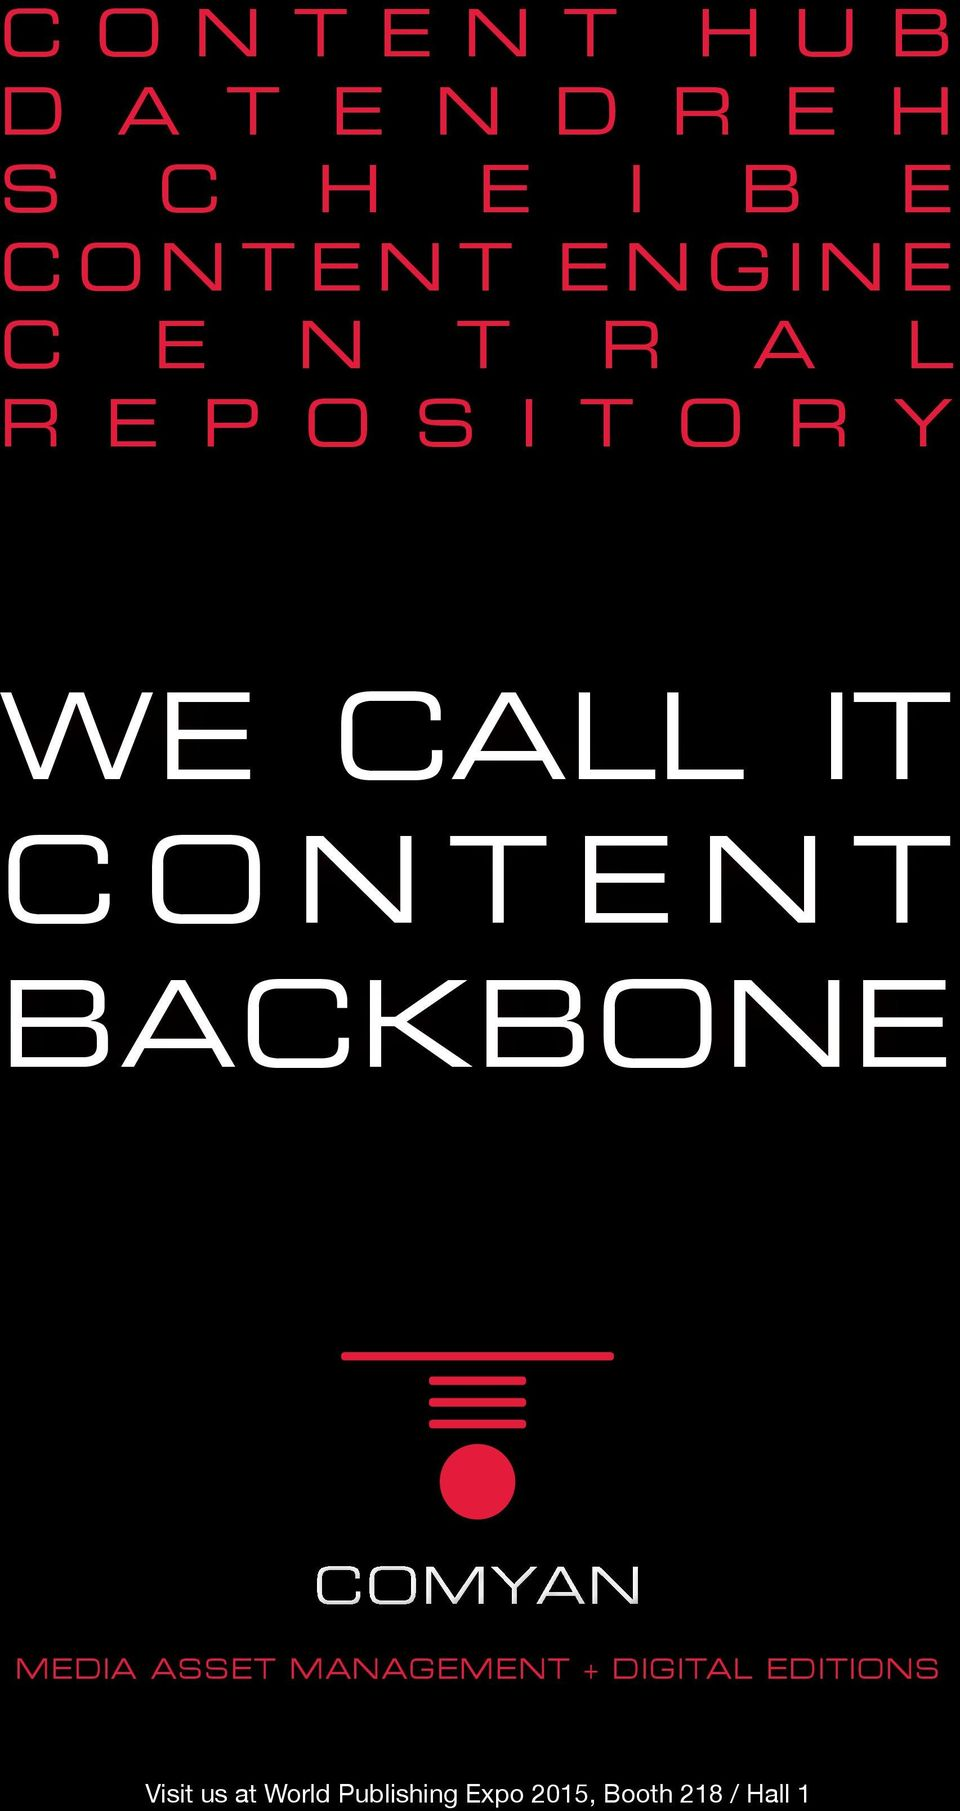 CONTENT BACKBONE MEDIA ASSET MANAGEMENT + DIGITAL